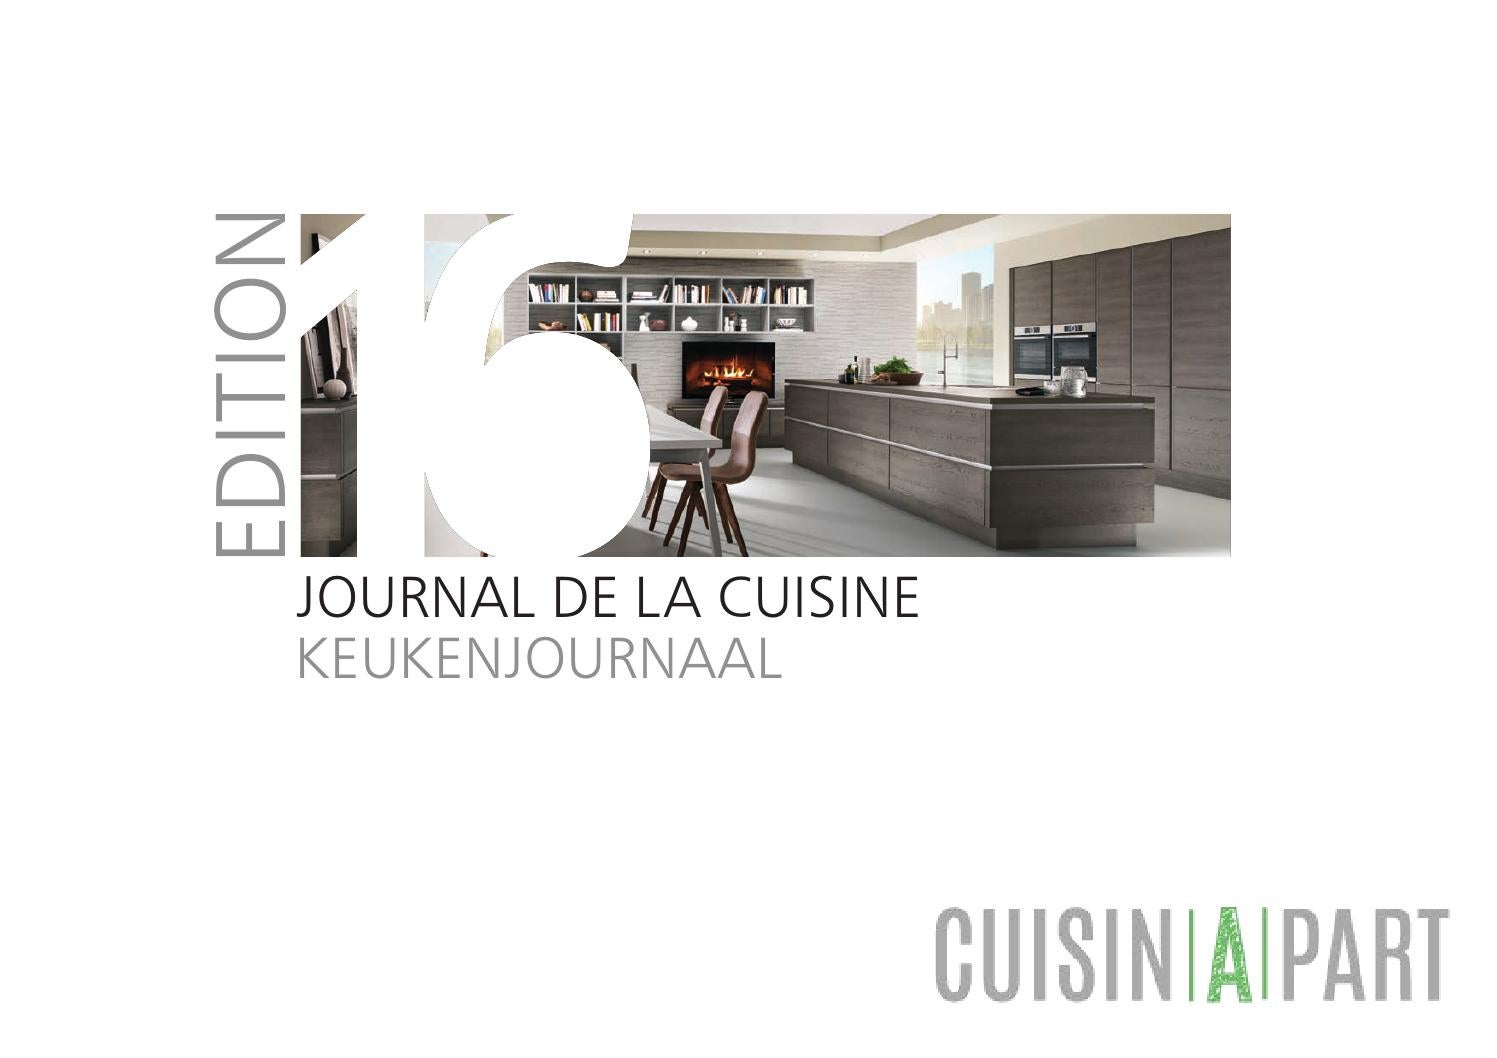 catalogue 2016 cuisina part by cuisina part issuu. Black Bedroom Furniture Sets. Home Design Ideas